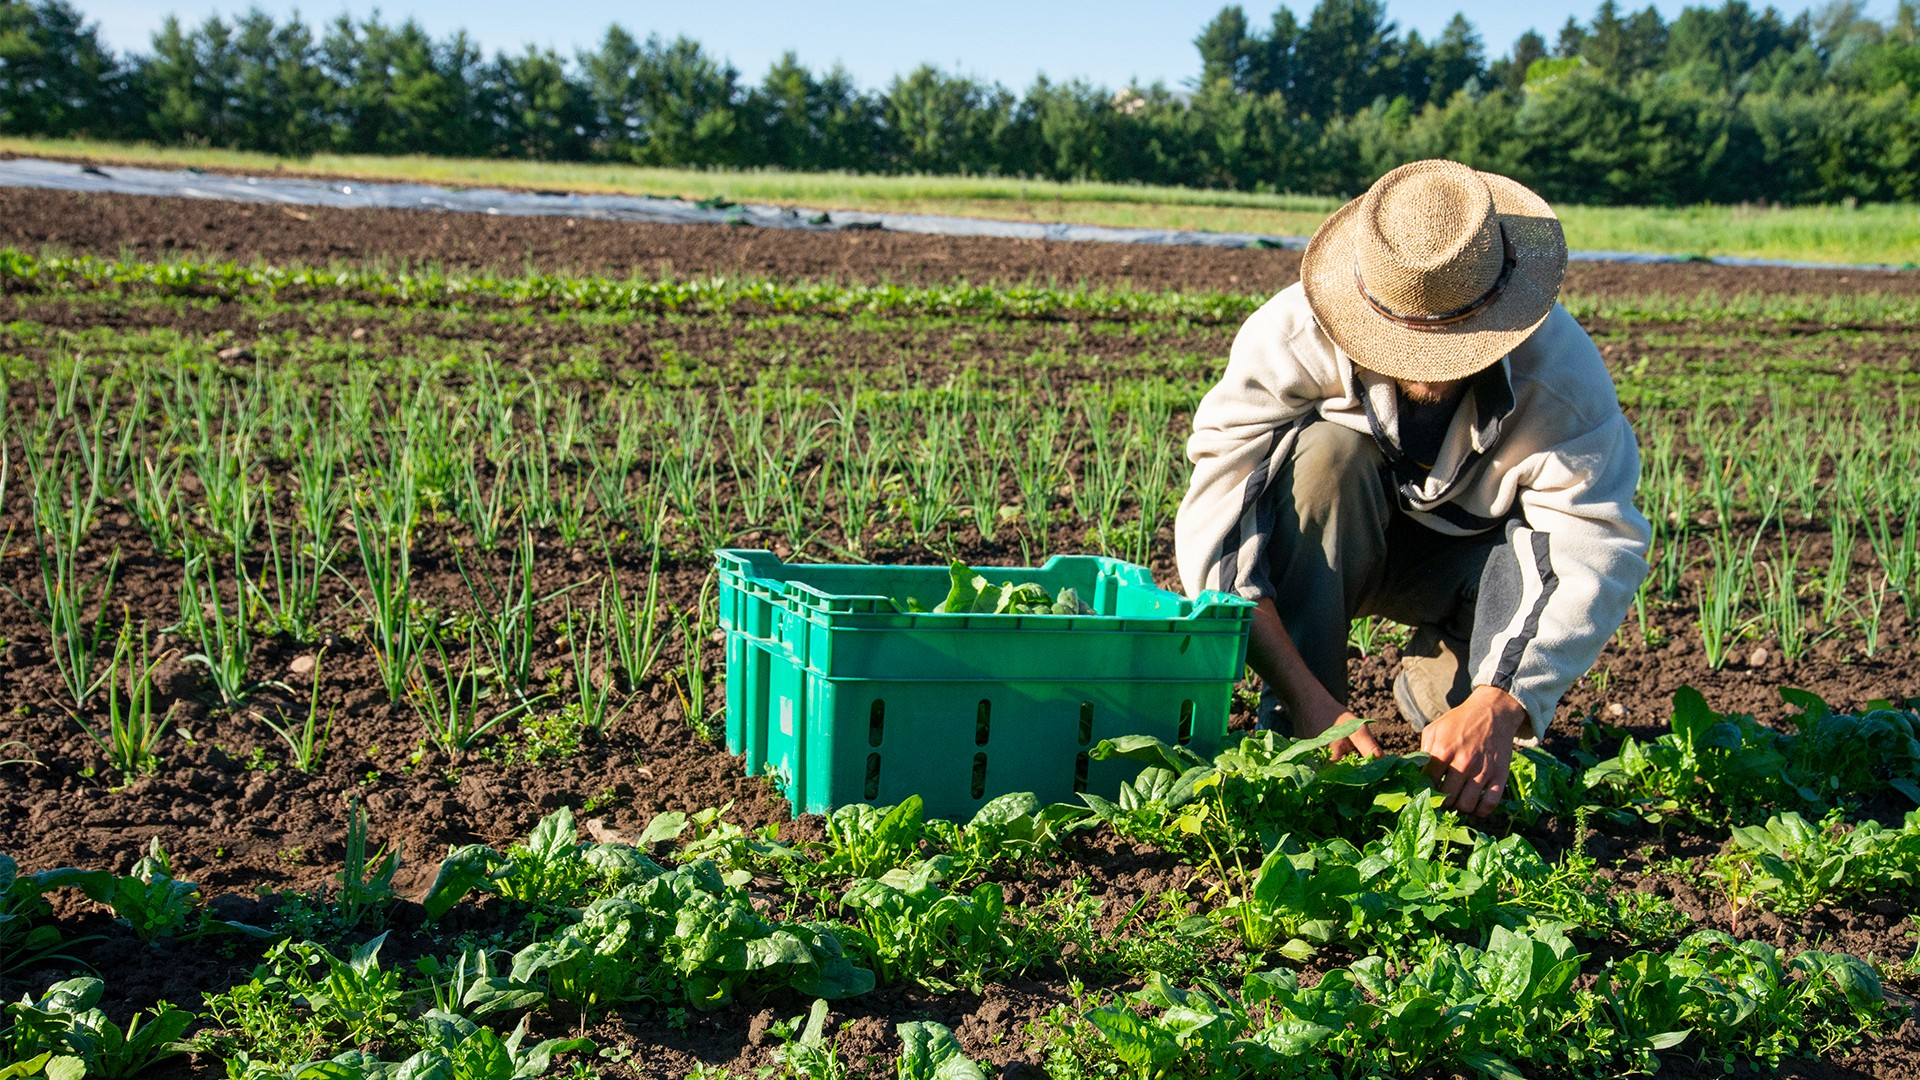 A farmer worker working in a vegetable field